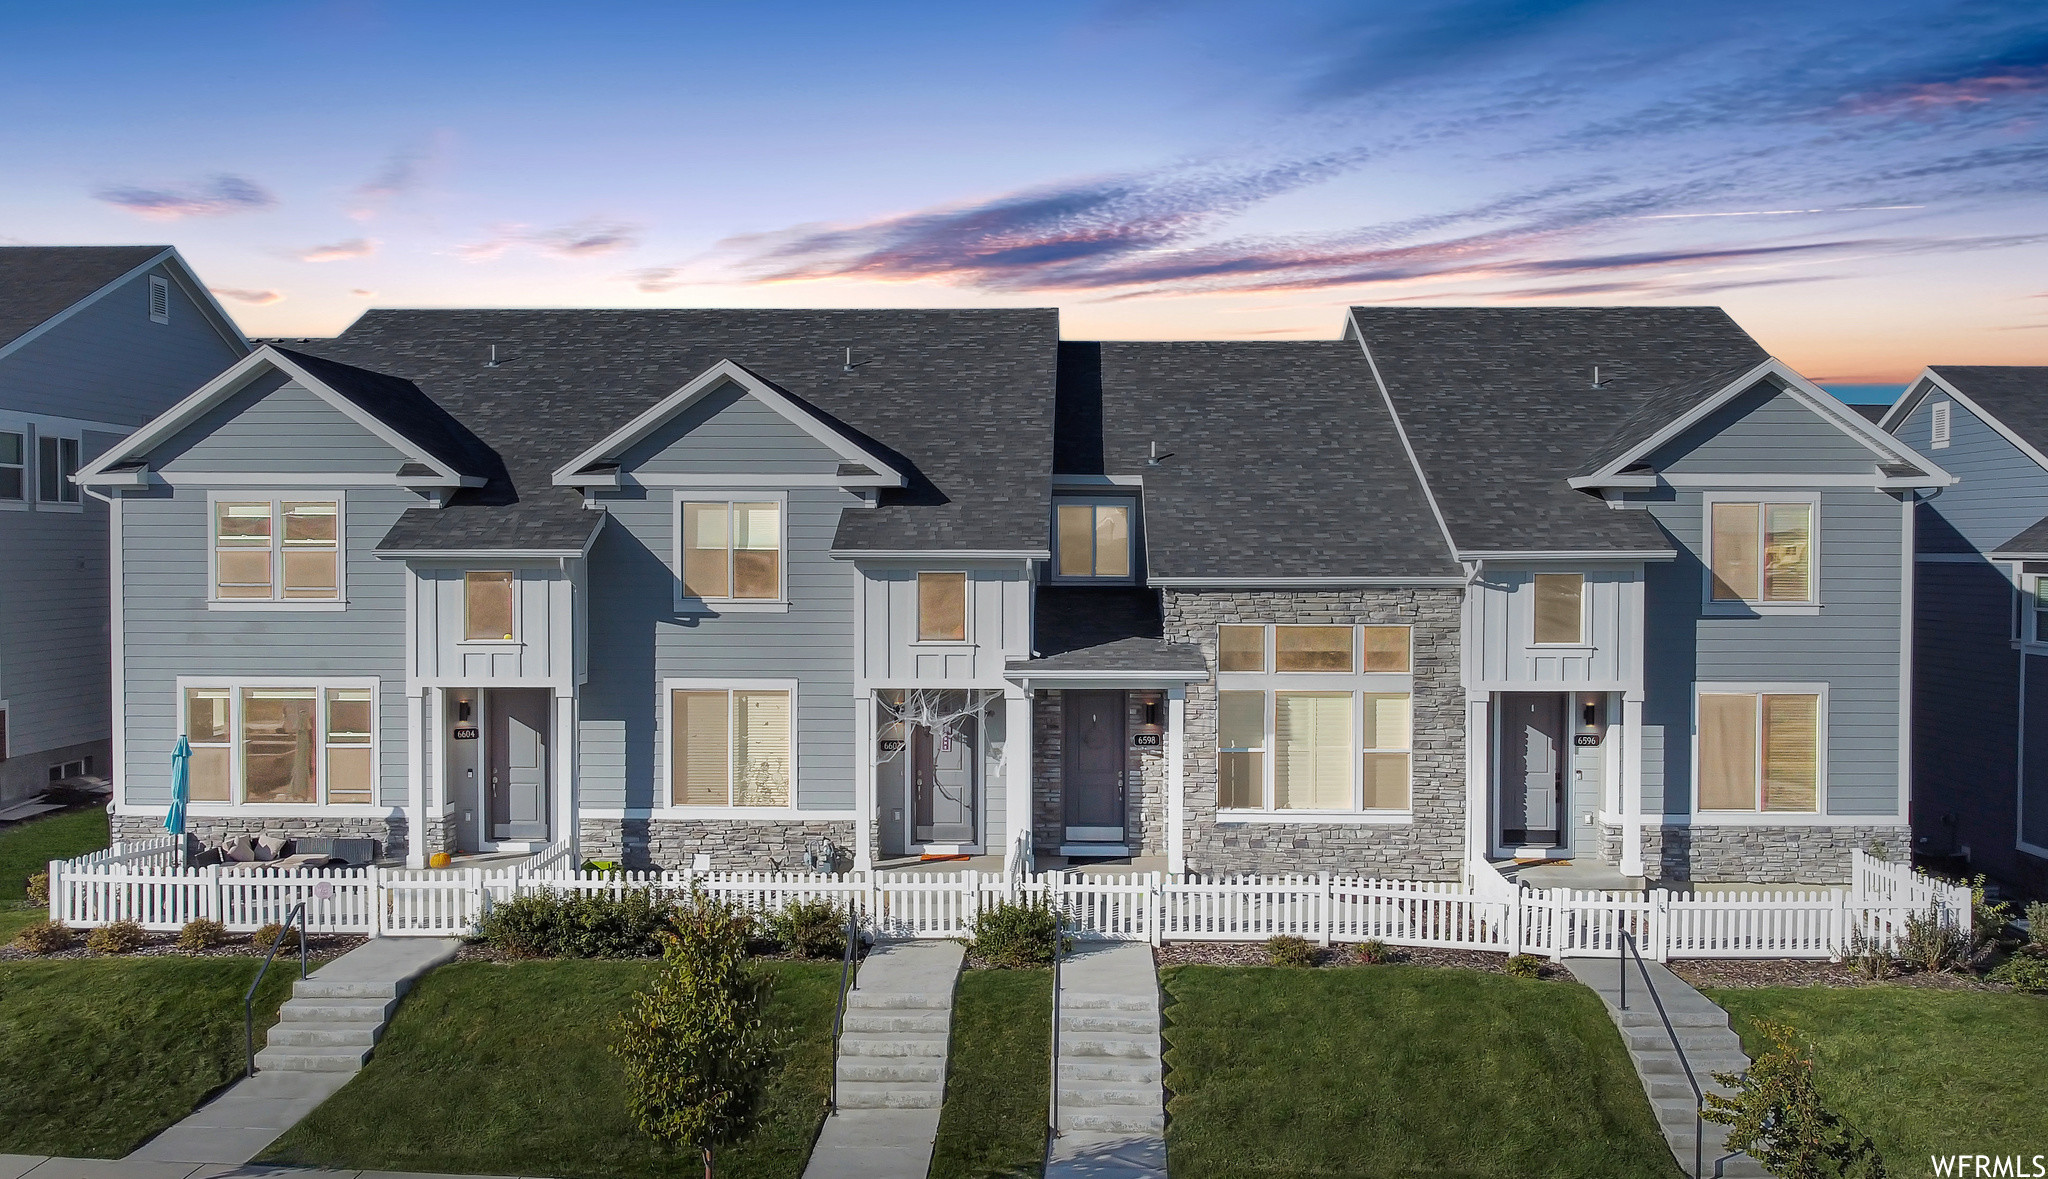 3-Story Townhouse In Terrace Hills